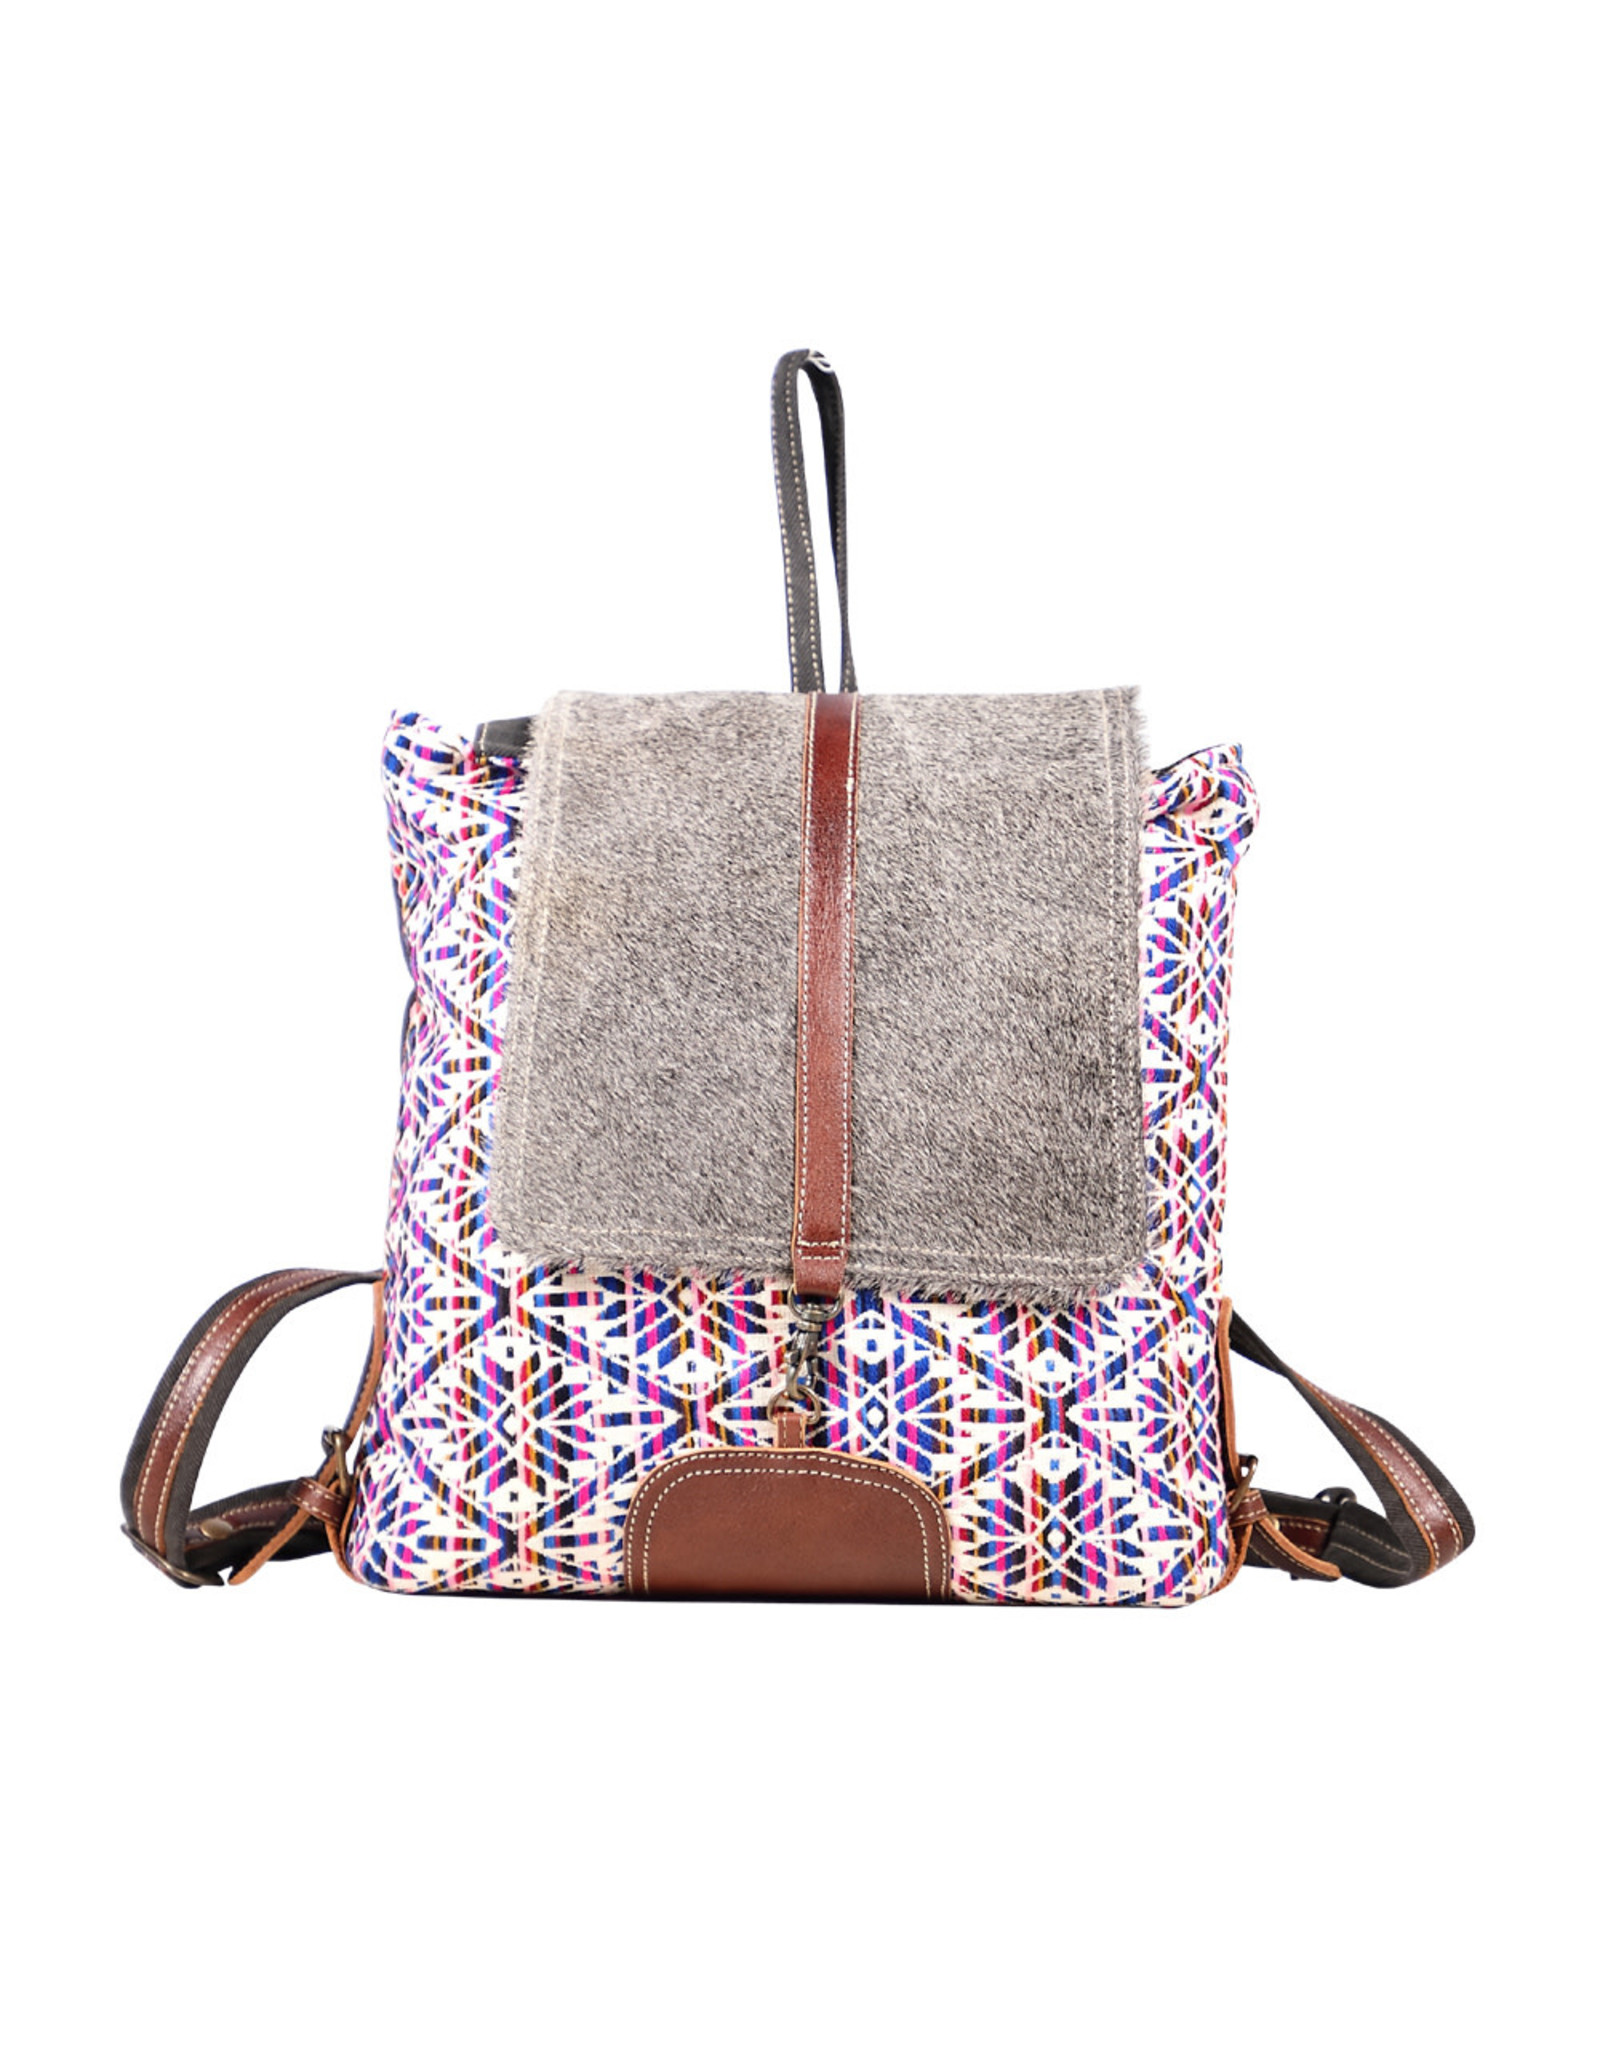 S 1899 Vibrant Backpack Bag Open all day, every day so you can shop for what you want, whenever you want. myra bags s 1899 vibrant backpack bag